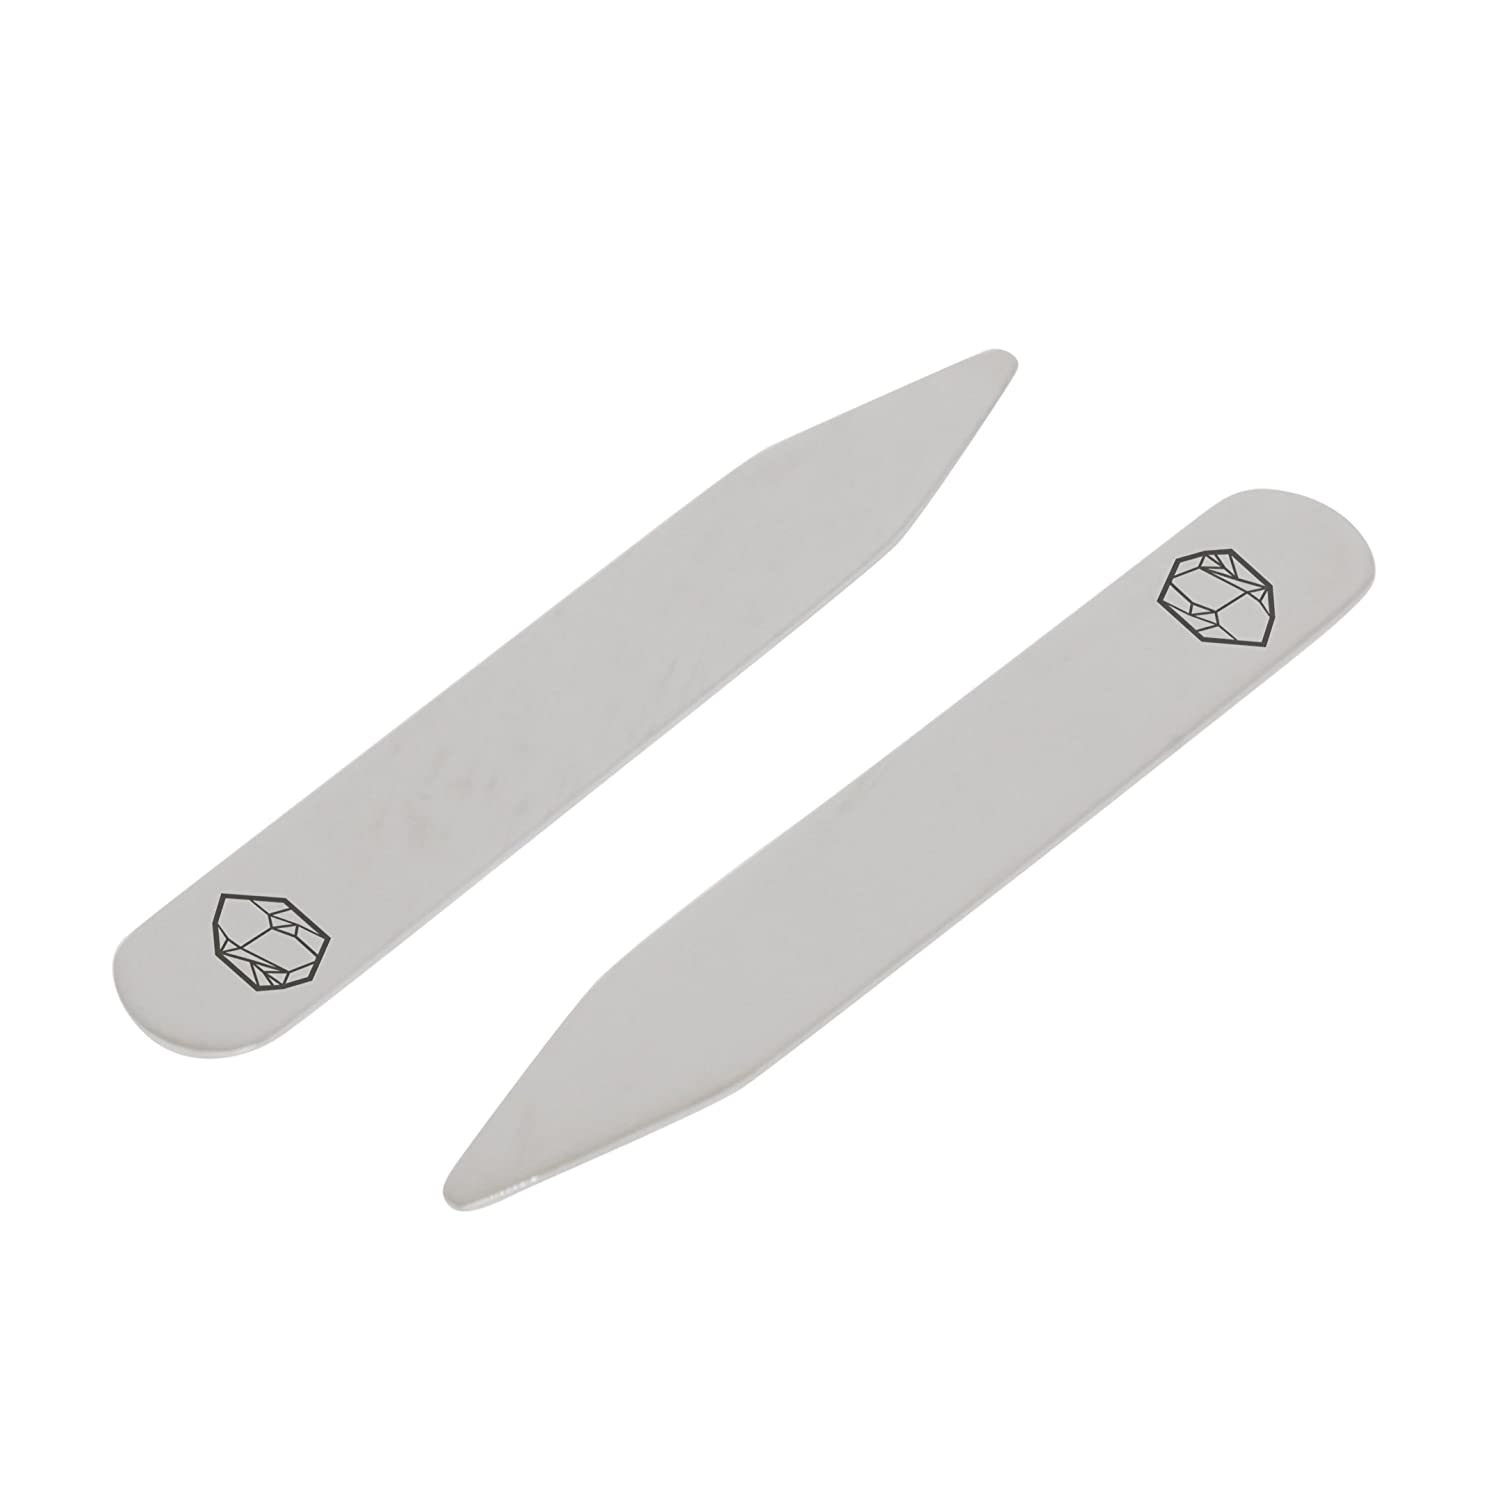 Made In USA MODERN GOODS SHOP Stainless Steel Collar Stays With Laser Engraved Snowman Design 2.5 Inch Metal Collar Stiffeners